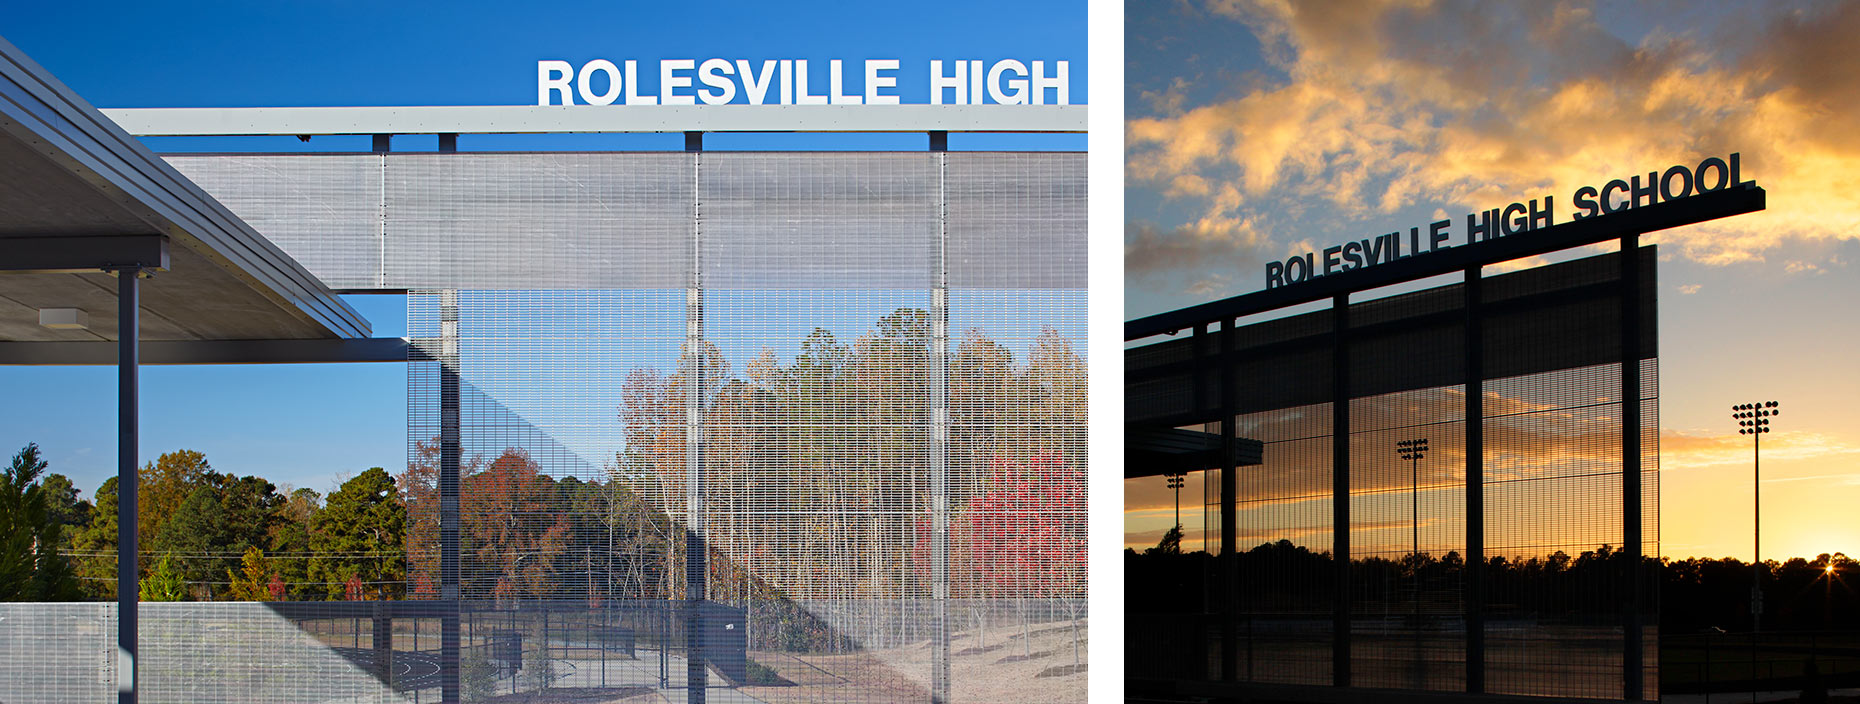 Rolesville-High-School-4508-7005-